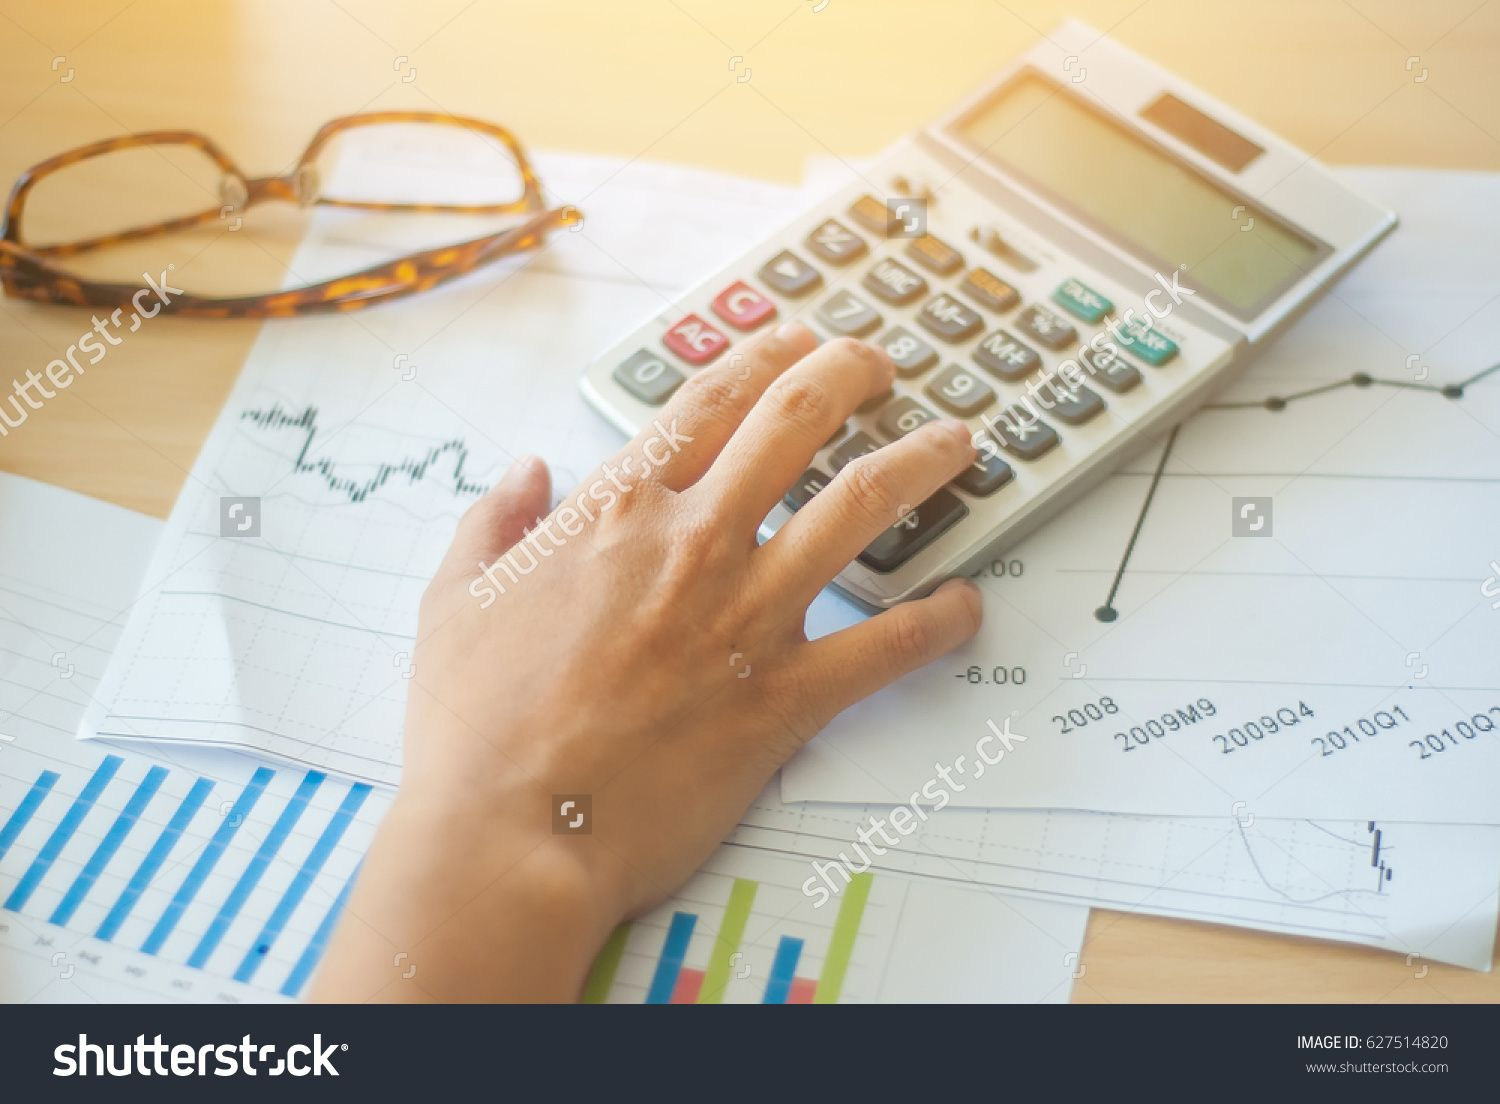 Calculator with woman hand doing finance and calculate on desk about cost at home office.